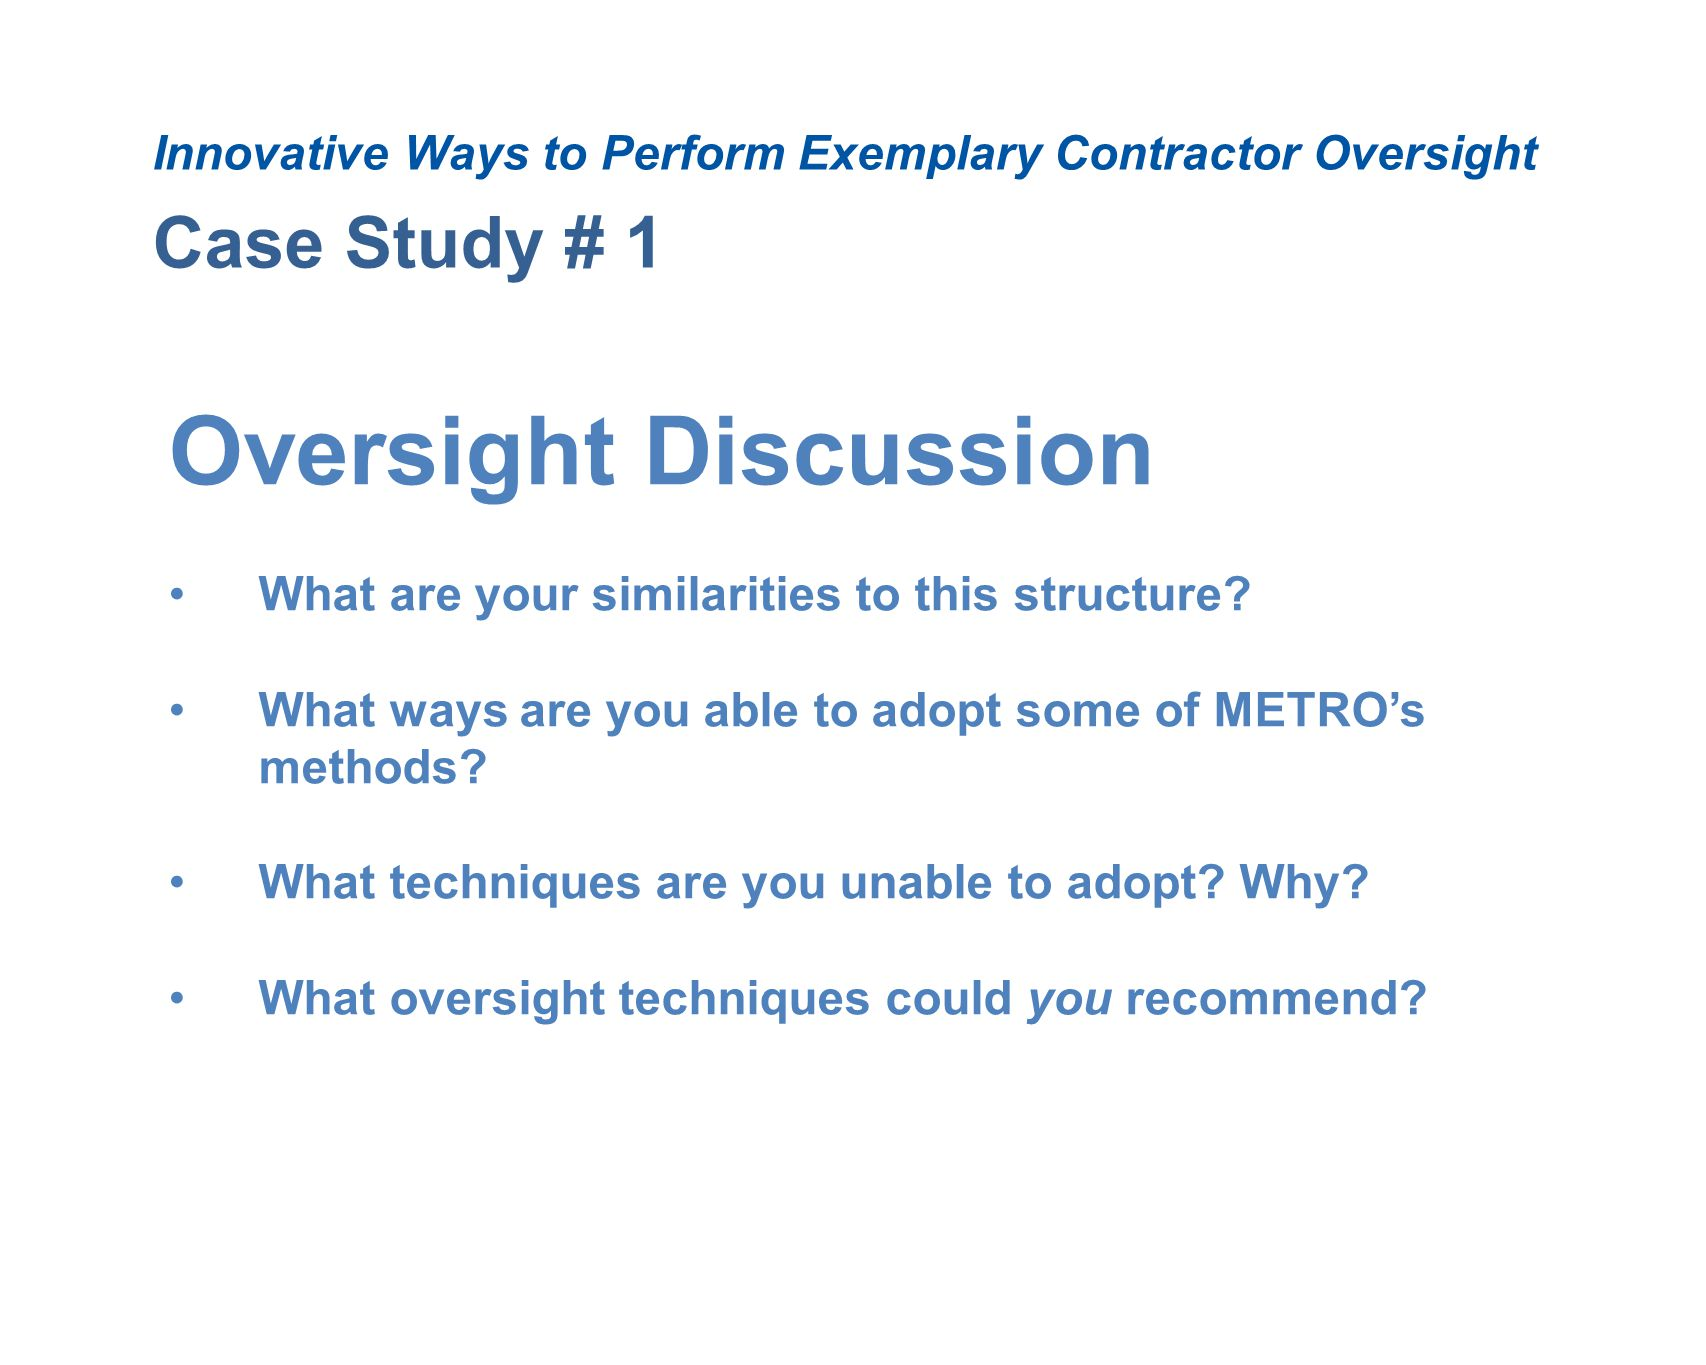 Case Study # 1 Innovative Ways to Perform Exemplary Contractor Oversight Oversight Discussion What are your similarities to this structure.